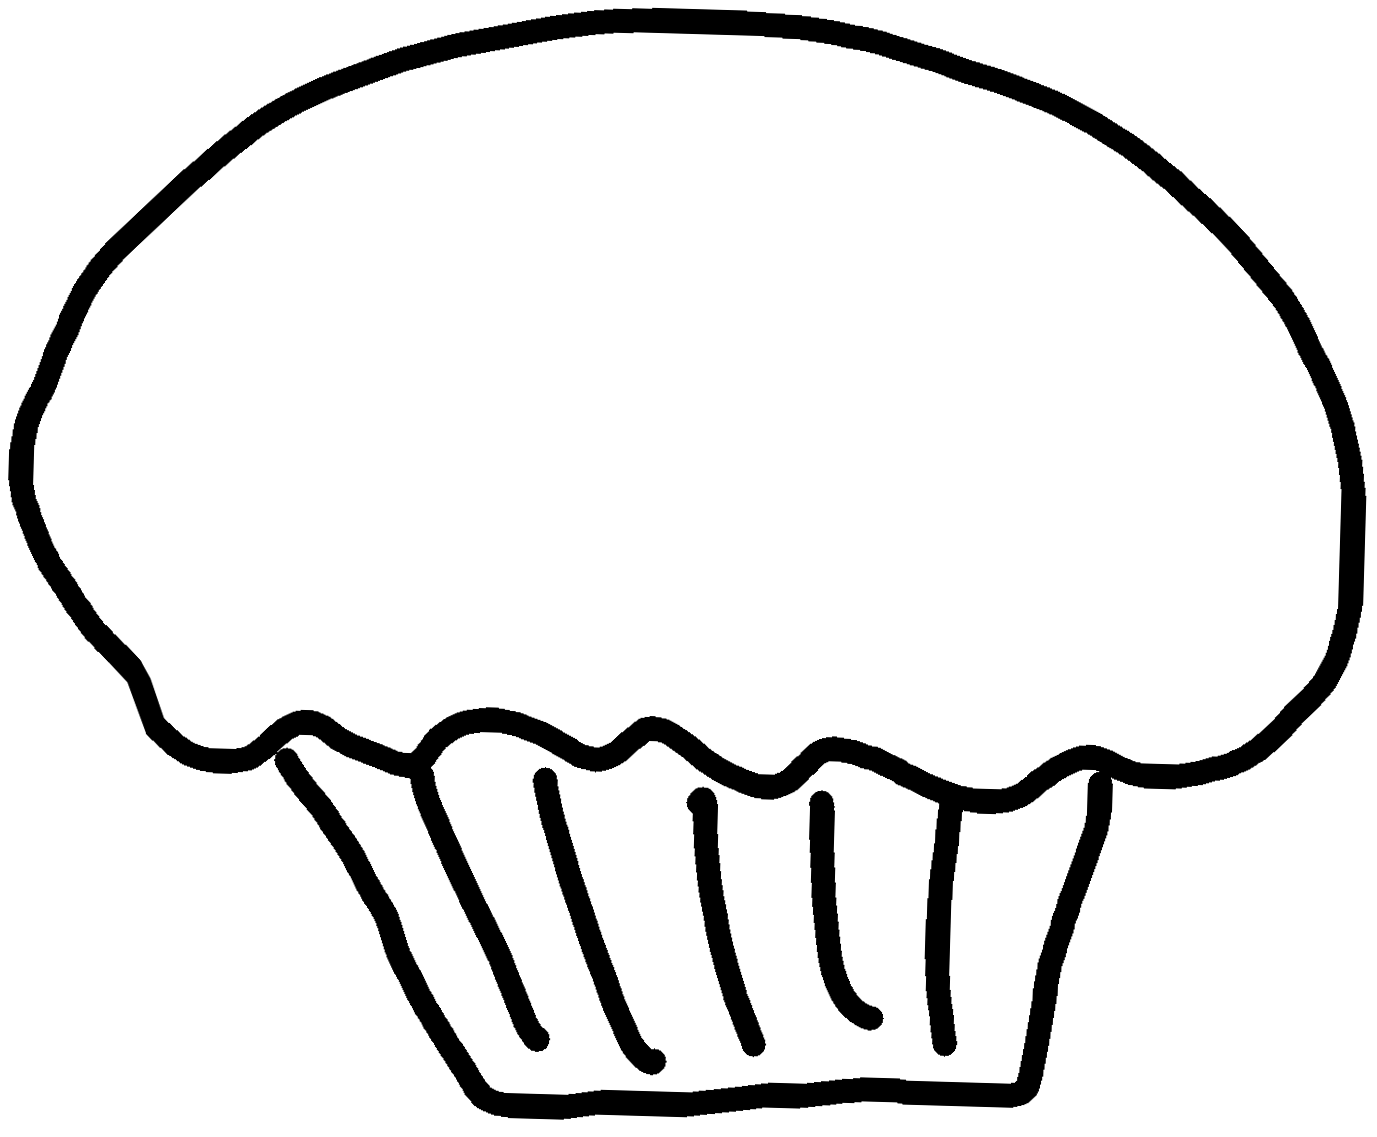 22 cupcake outline clip art free cliparts that you can download to